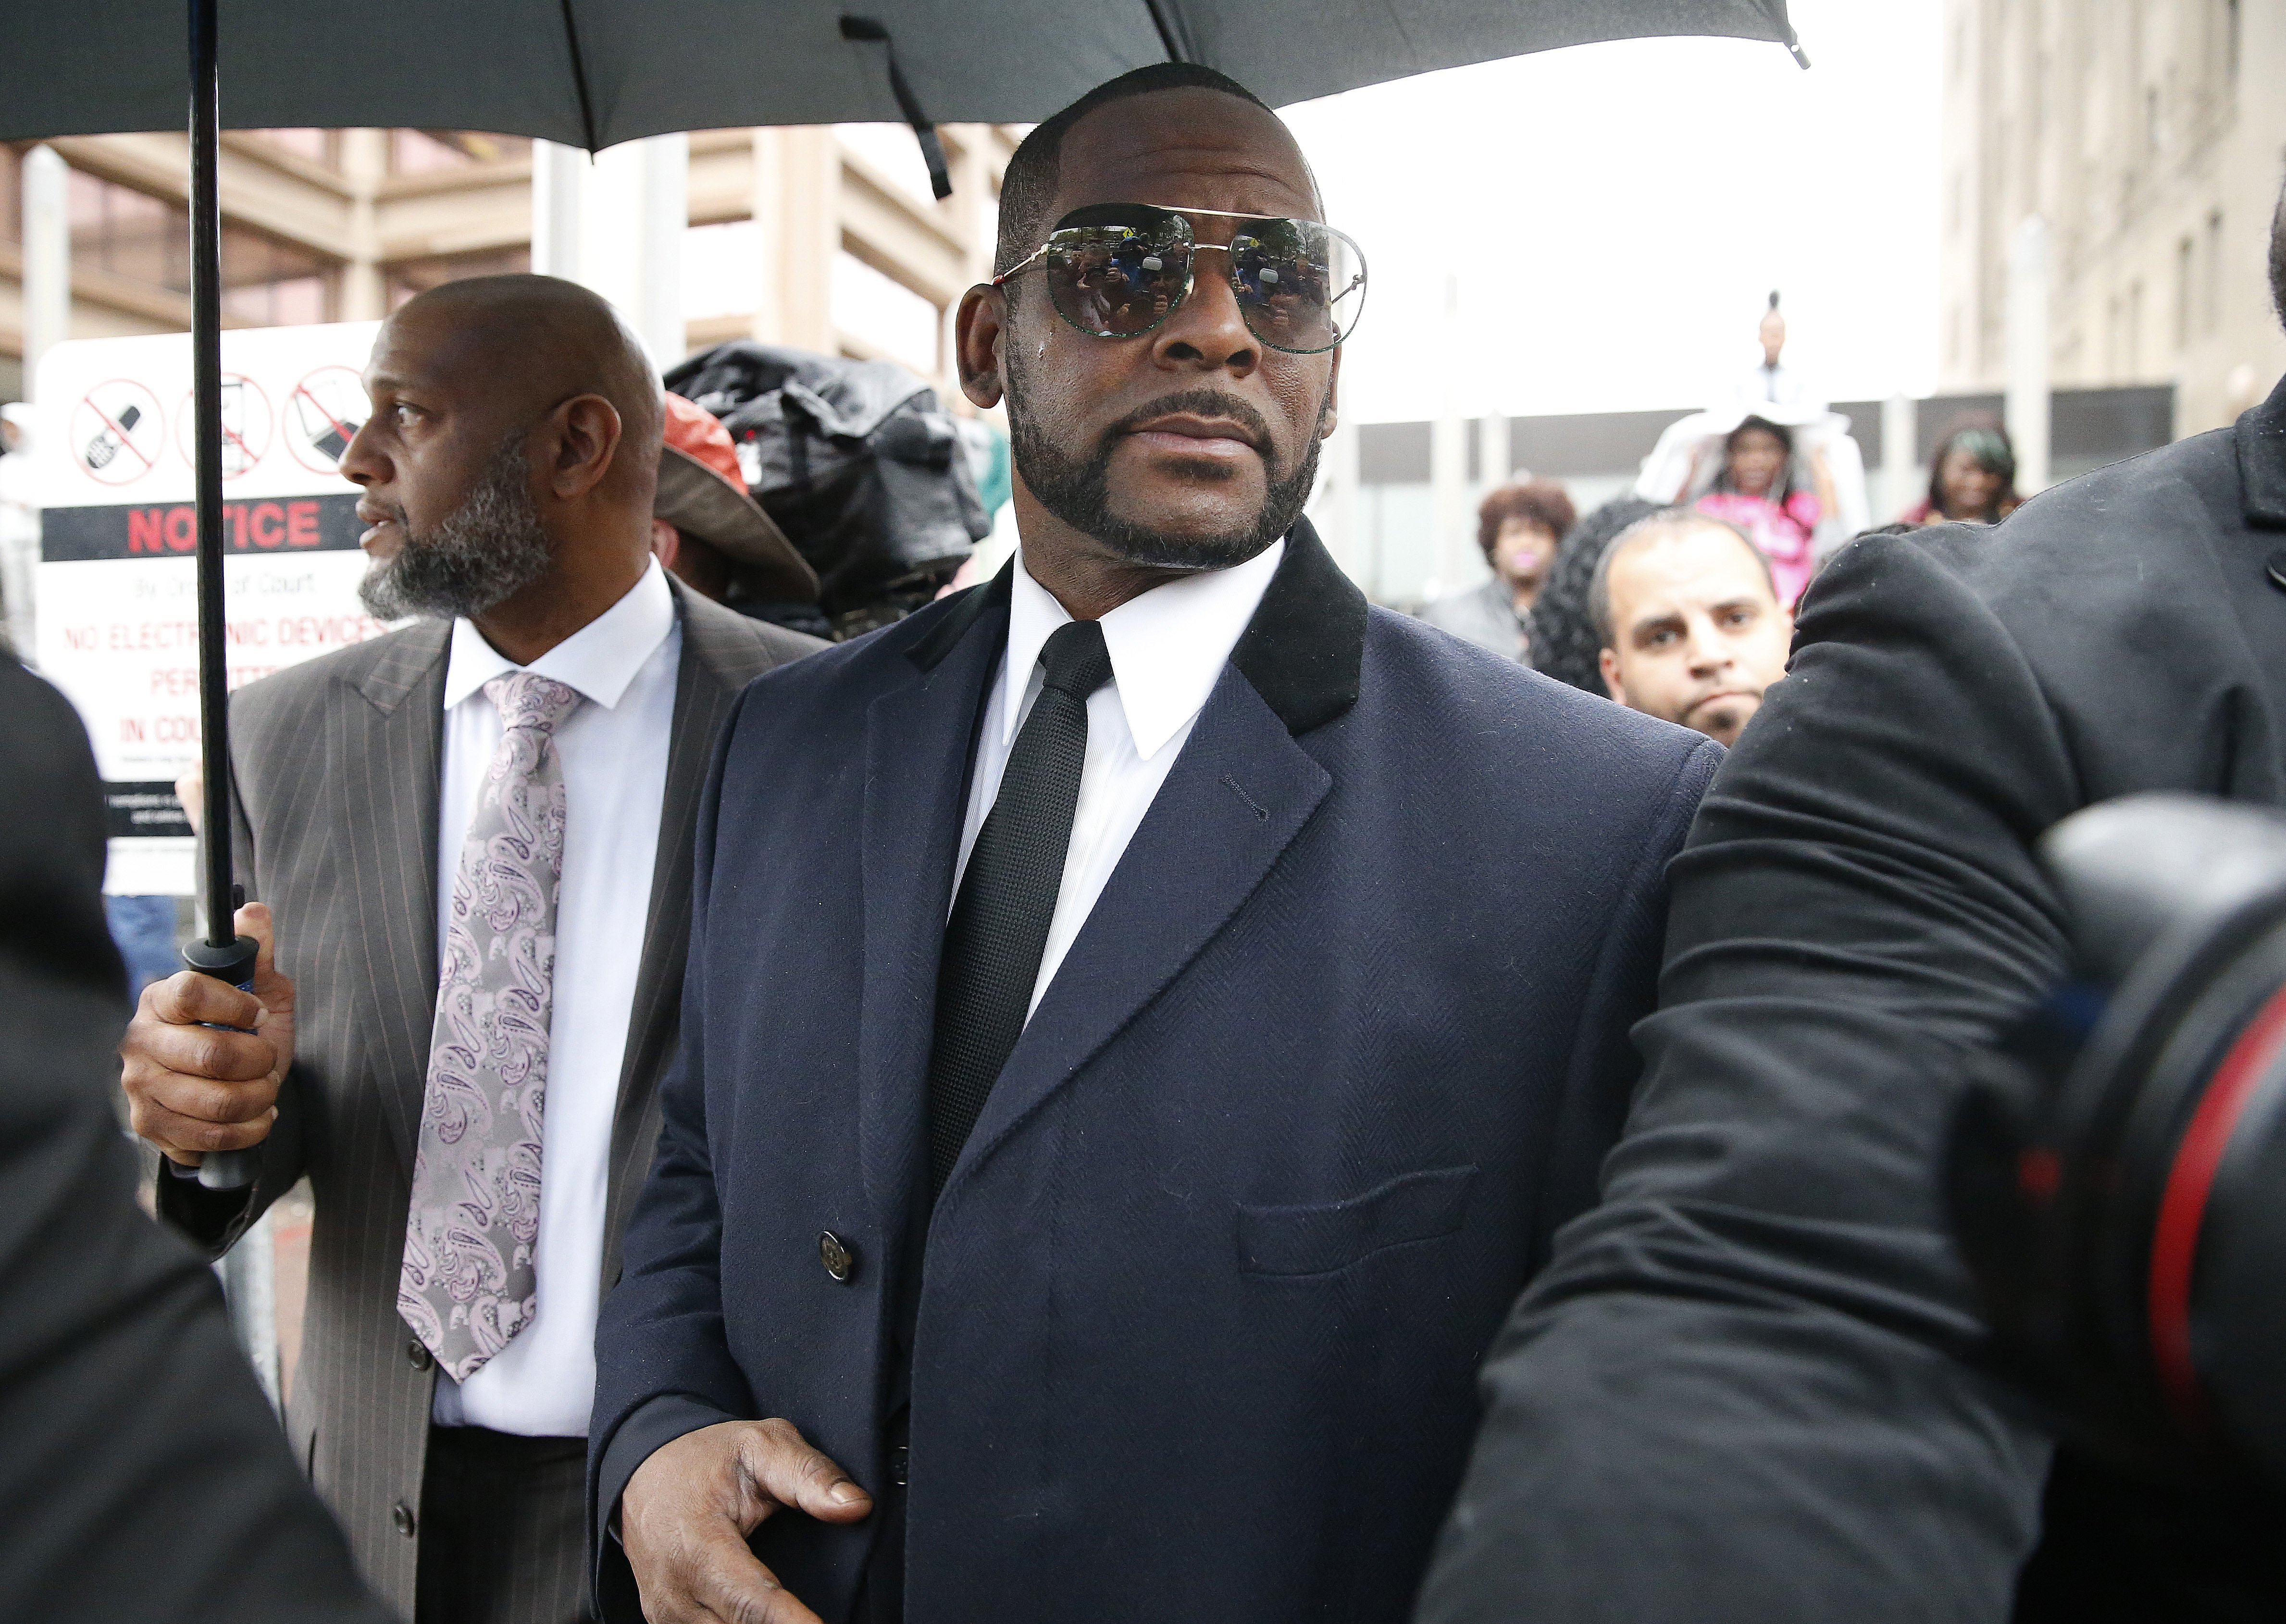 R. Kelly leaves the Leighton Courthouse on May 07, 2019 in Chicago| Photo: Getty Images